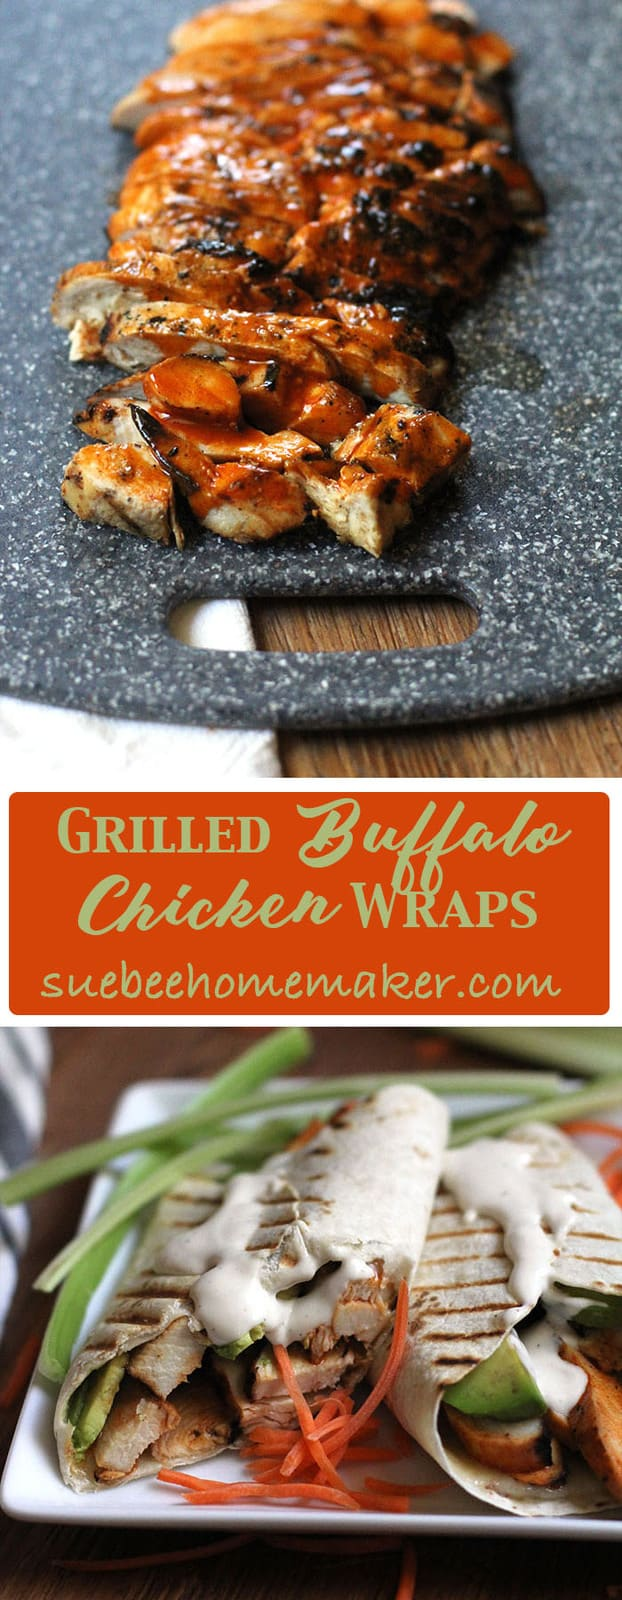 I love an easy weeknight meal, and these Grilled Buffalo Chicken Wraps fit the bill. Prep the chicken the night before, fire up the grill after work, and you are on your way to a tasty dinner! suebeehomemaker.com